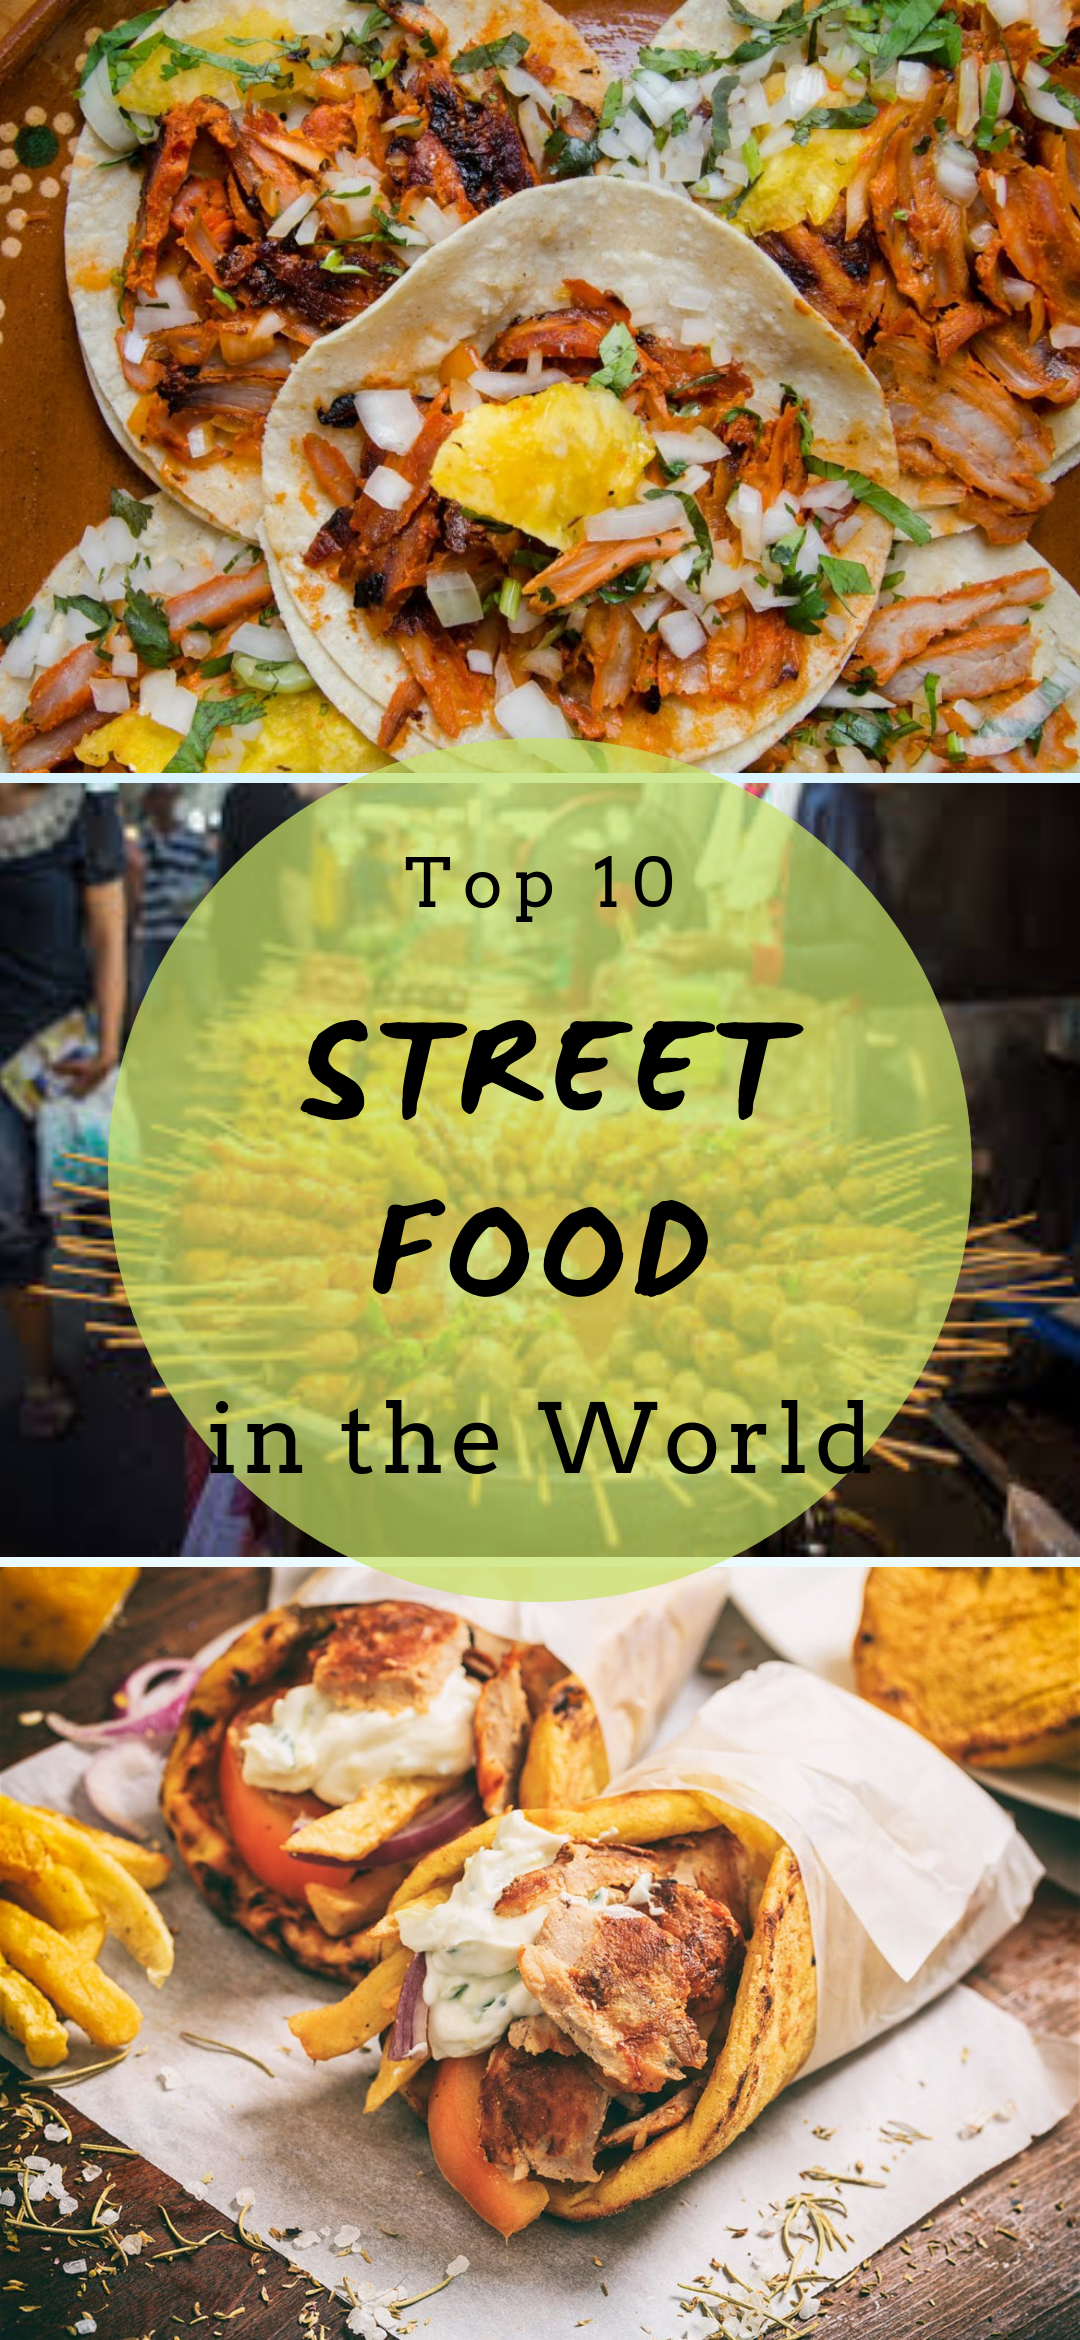 Top 10 Street Food in the World,  #Food #Foodietravelstreetfood #Street #Top #World